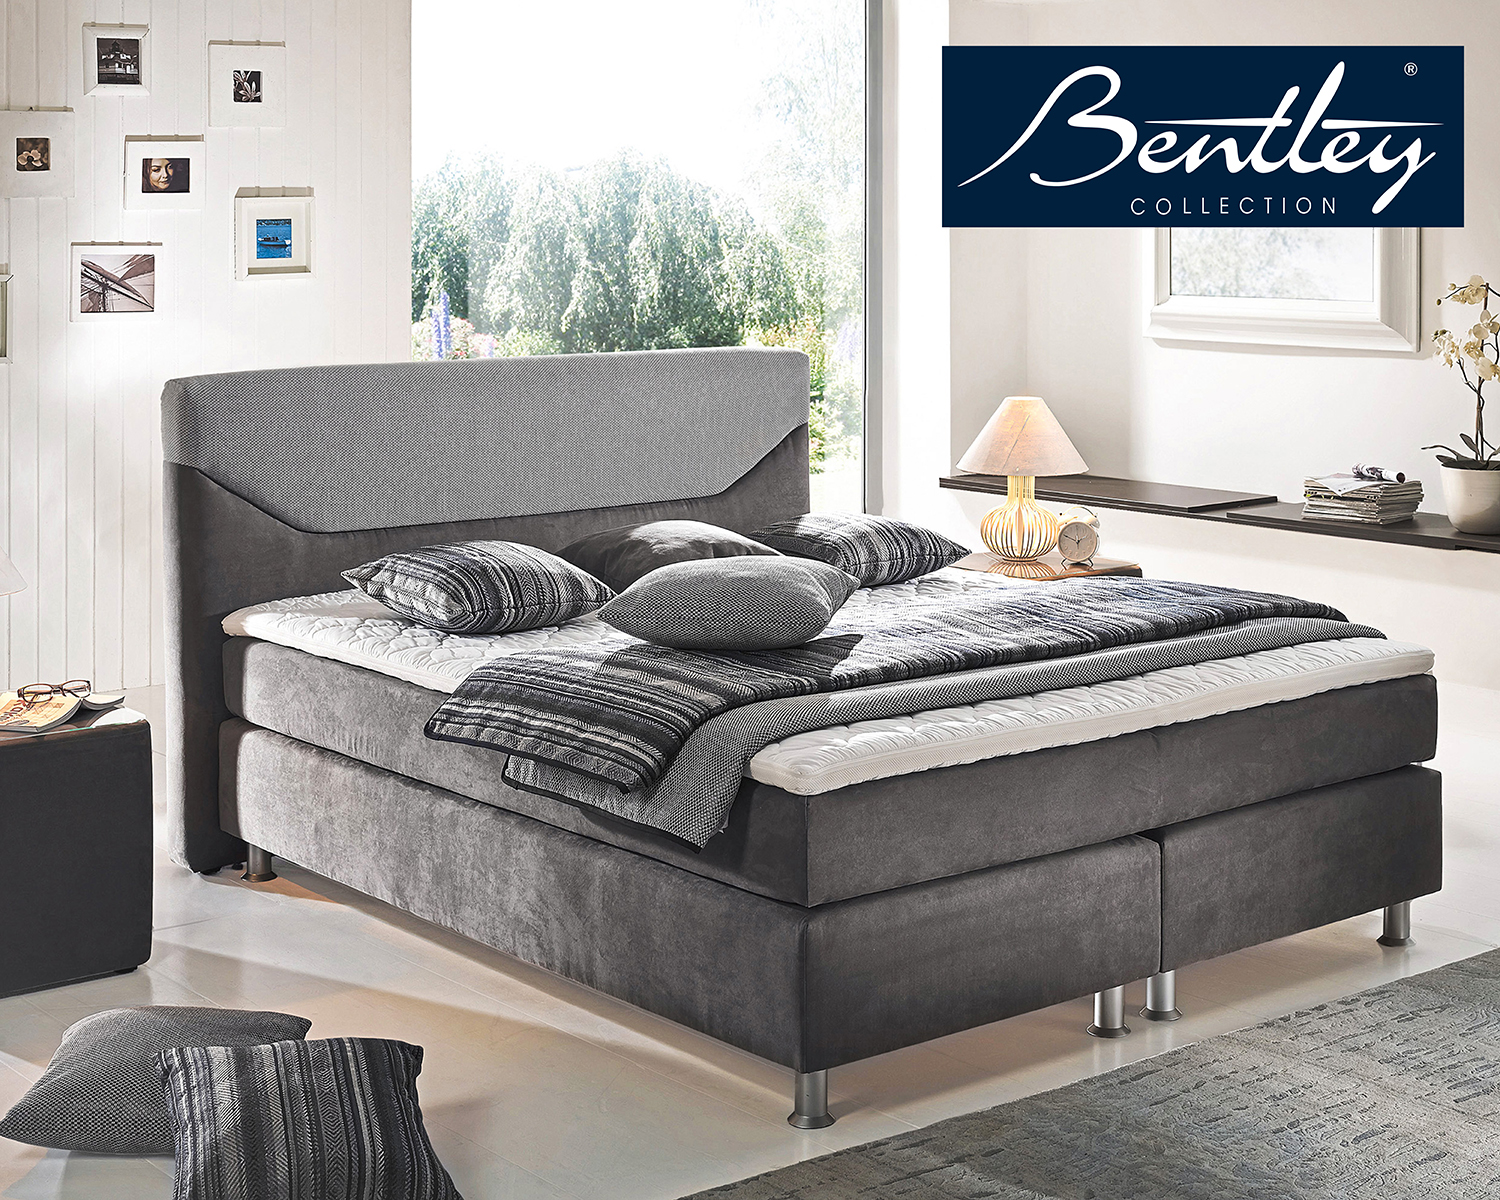 anzeige aktions finale bei m bel mahler 1 2 preis auf. Black Bedroom Furniture Sets. Home Design Ideas